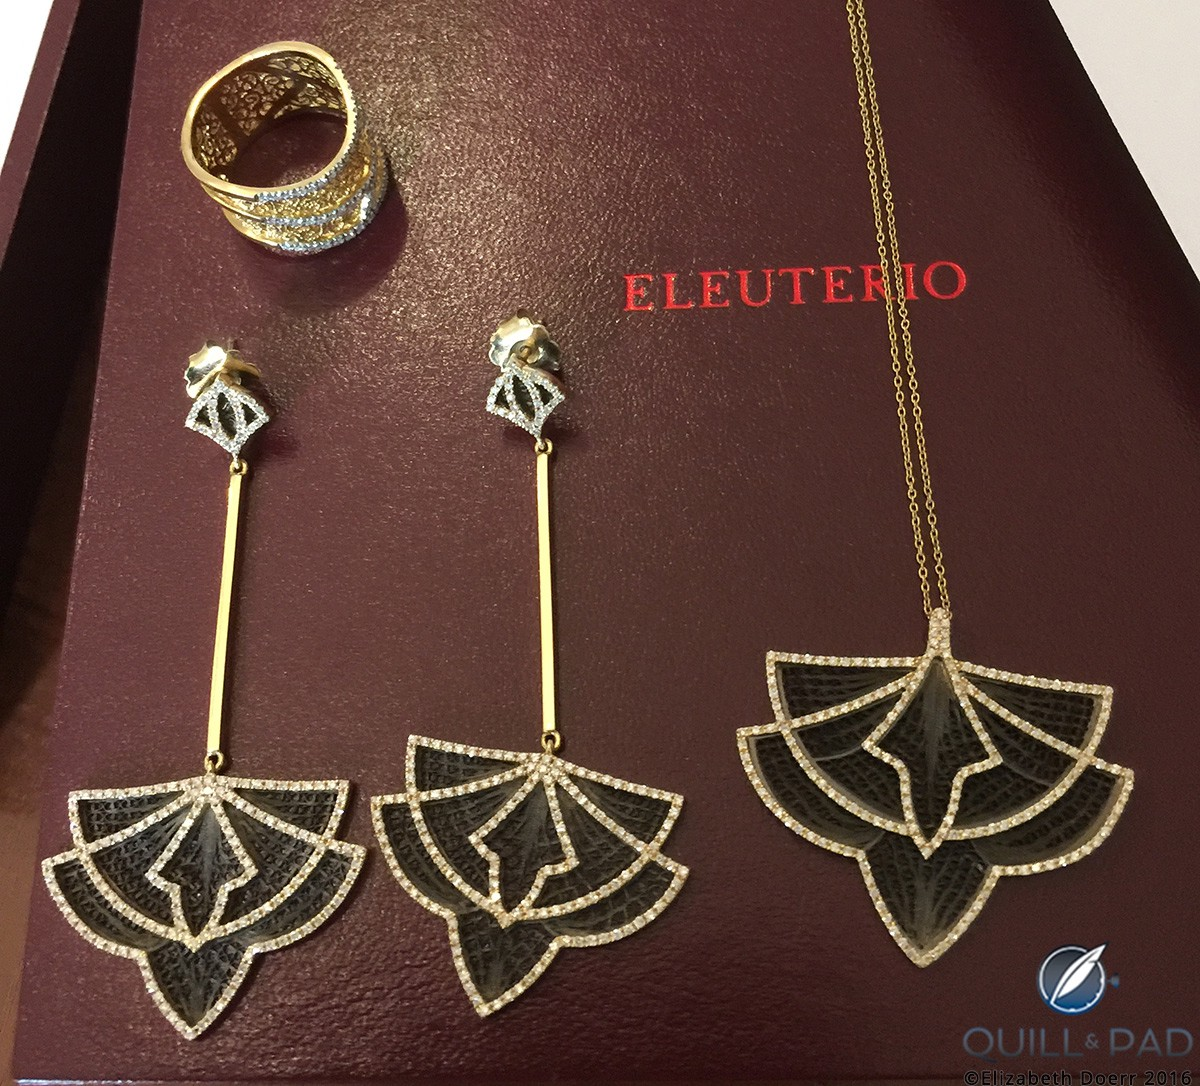 Eleuterio filigree necklace, earrings and ring